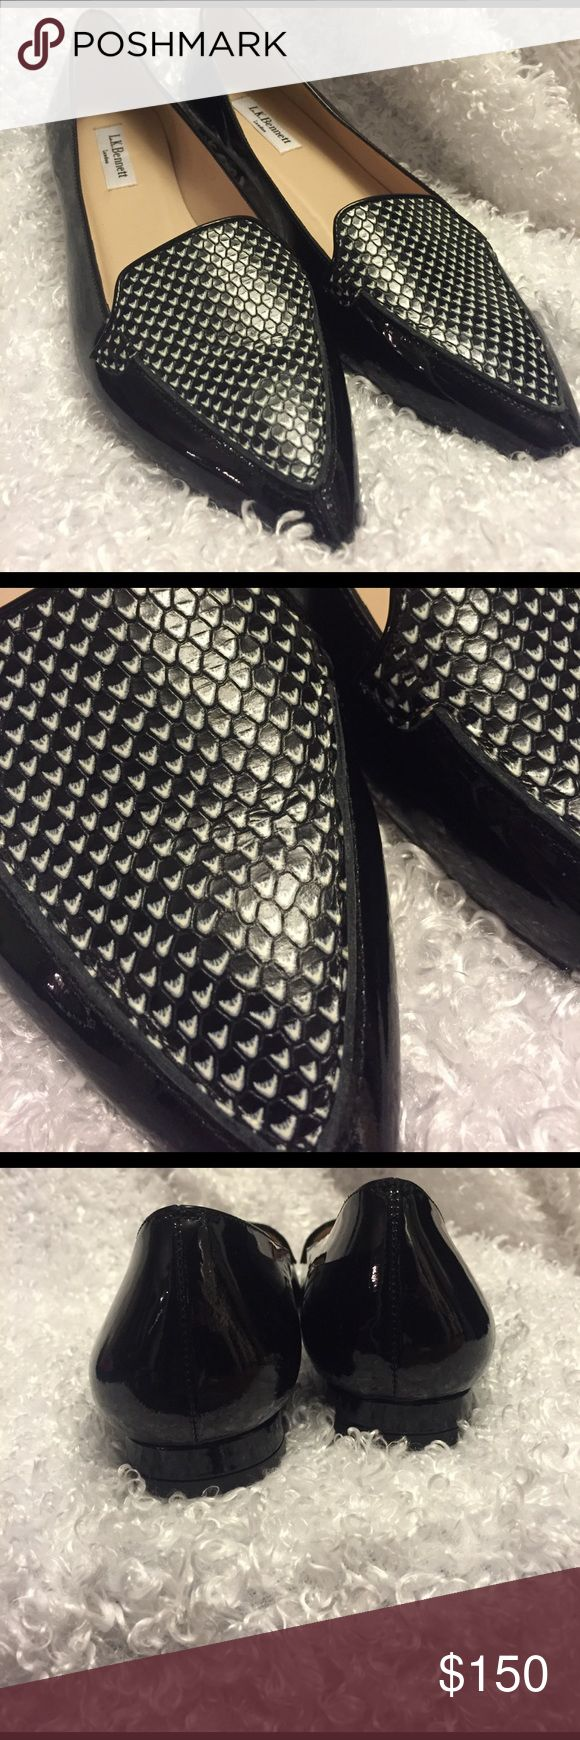 LK Bennett black patent leather shoes. Size 39 EUC. Like new. Not flaws or blemishes. Only sign of wear is on soles. LK Bennett Shoes Flats & Loafers